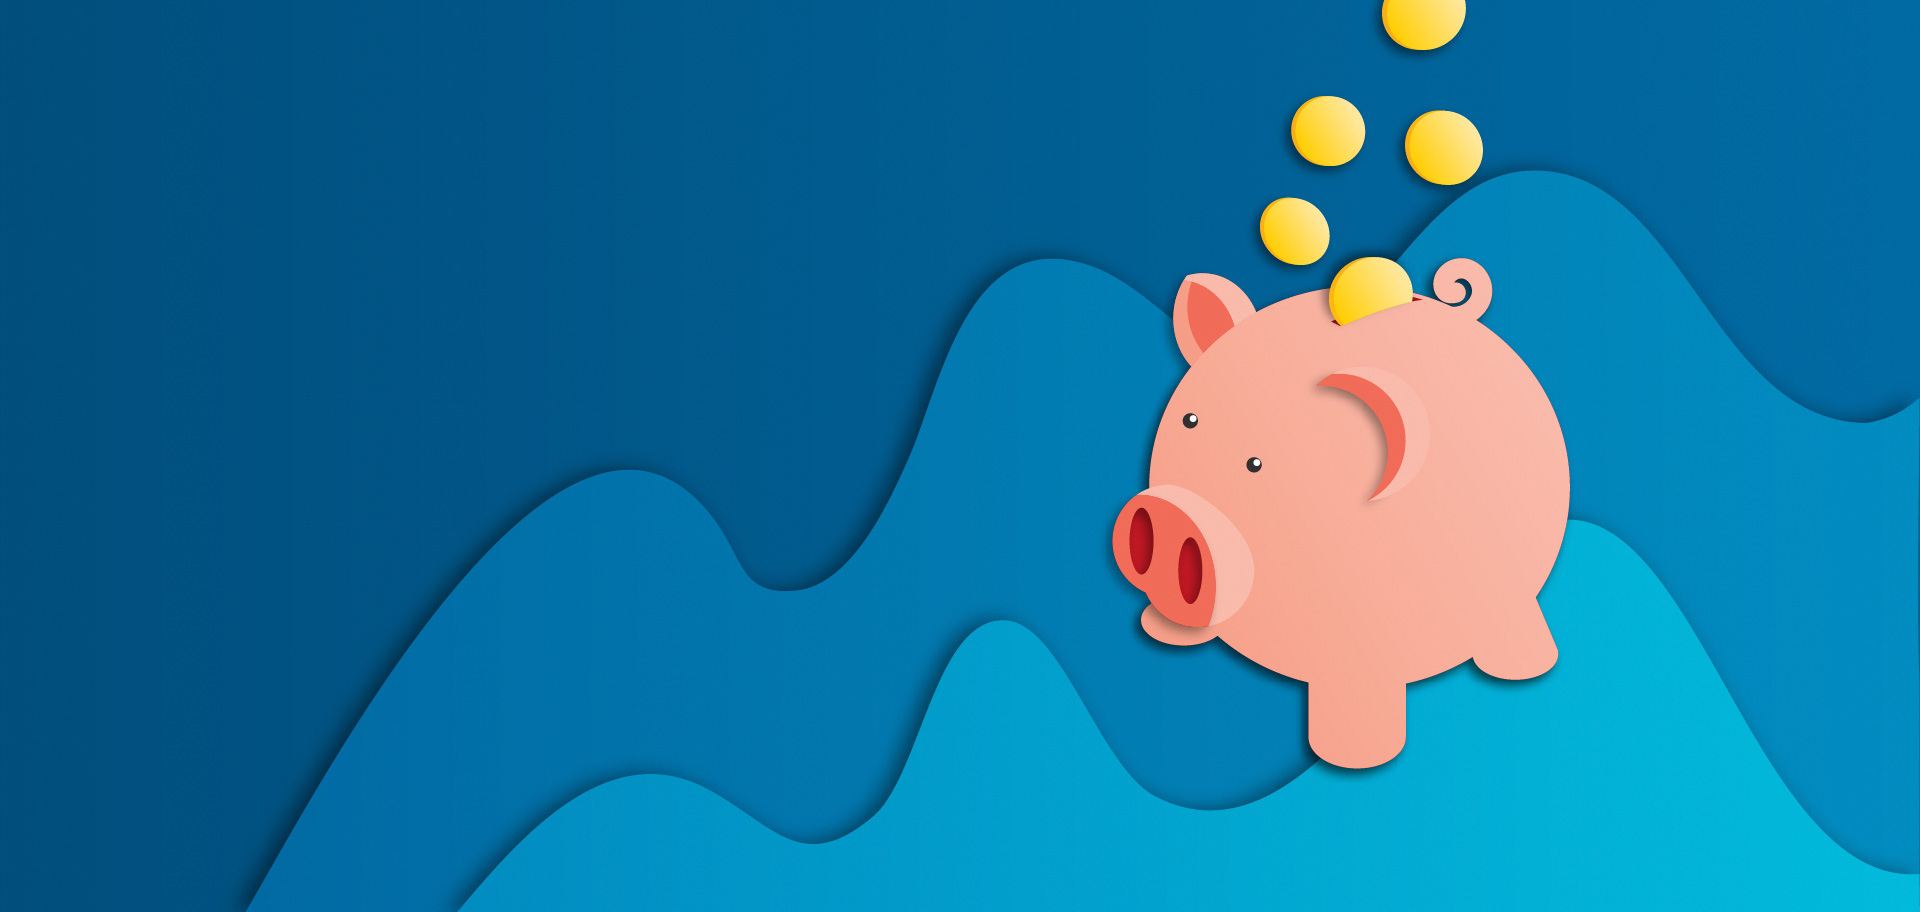 How much should I spend on marketing? 7 Steps to a Marketing Budget